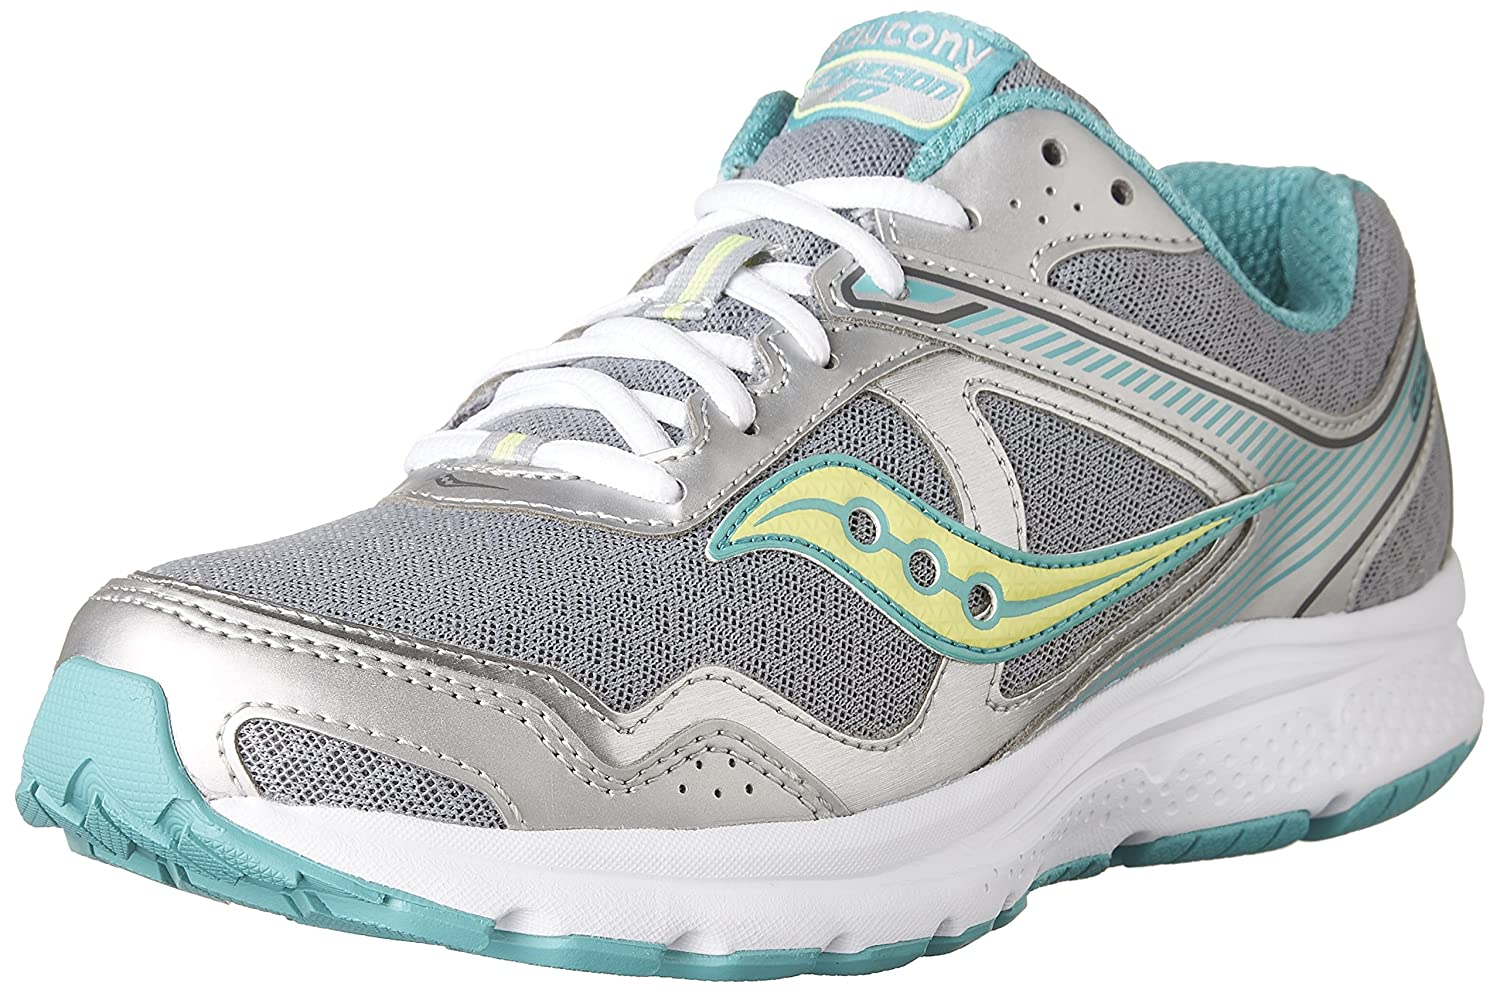 Saucony Women's Cohesion 10 Running Shoe B01HPGJ8KY 9.5 D - Wide|Grey | Teal | Citron